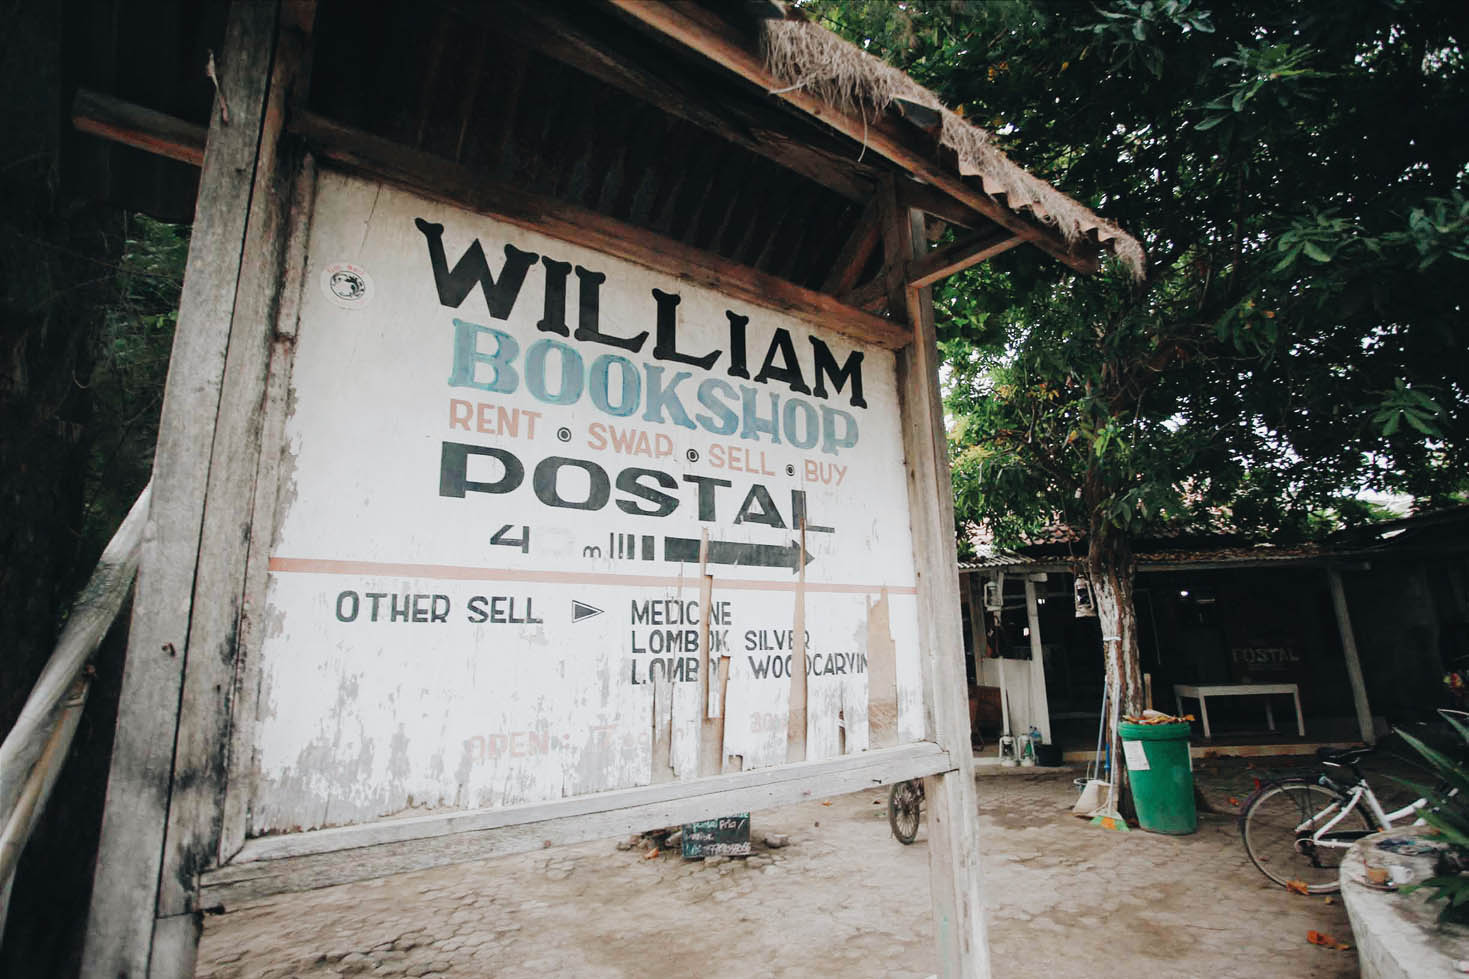 Papan petunjuk William Book Shop yang berada di belakang Food Night Market